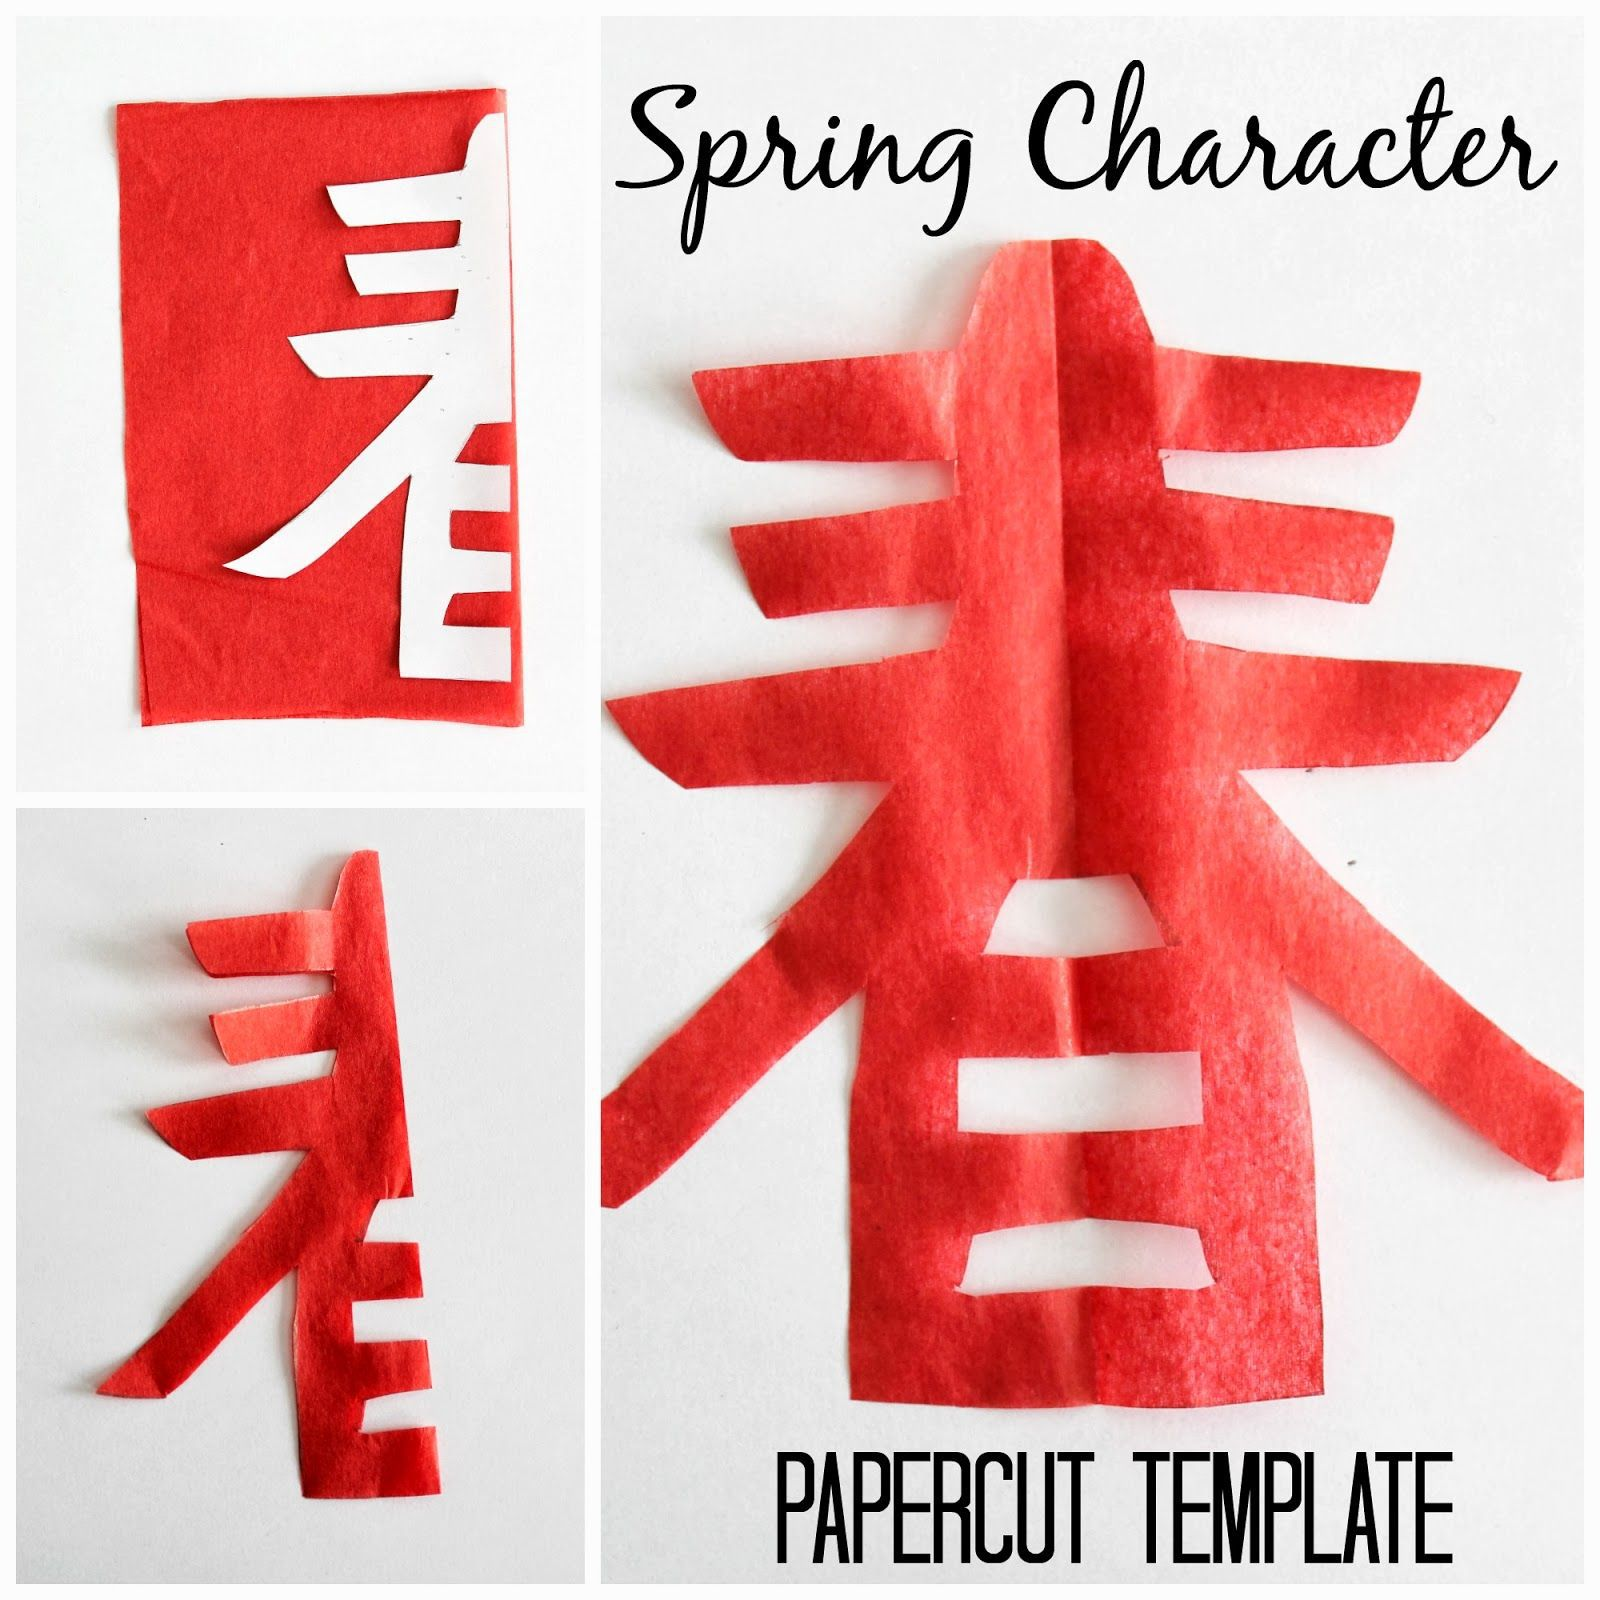 006 Stupendou Chinese Paper Cut Template Highest Clarity Full